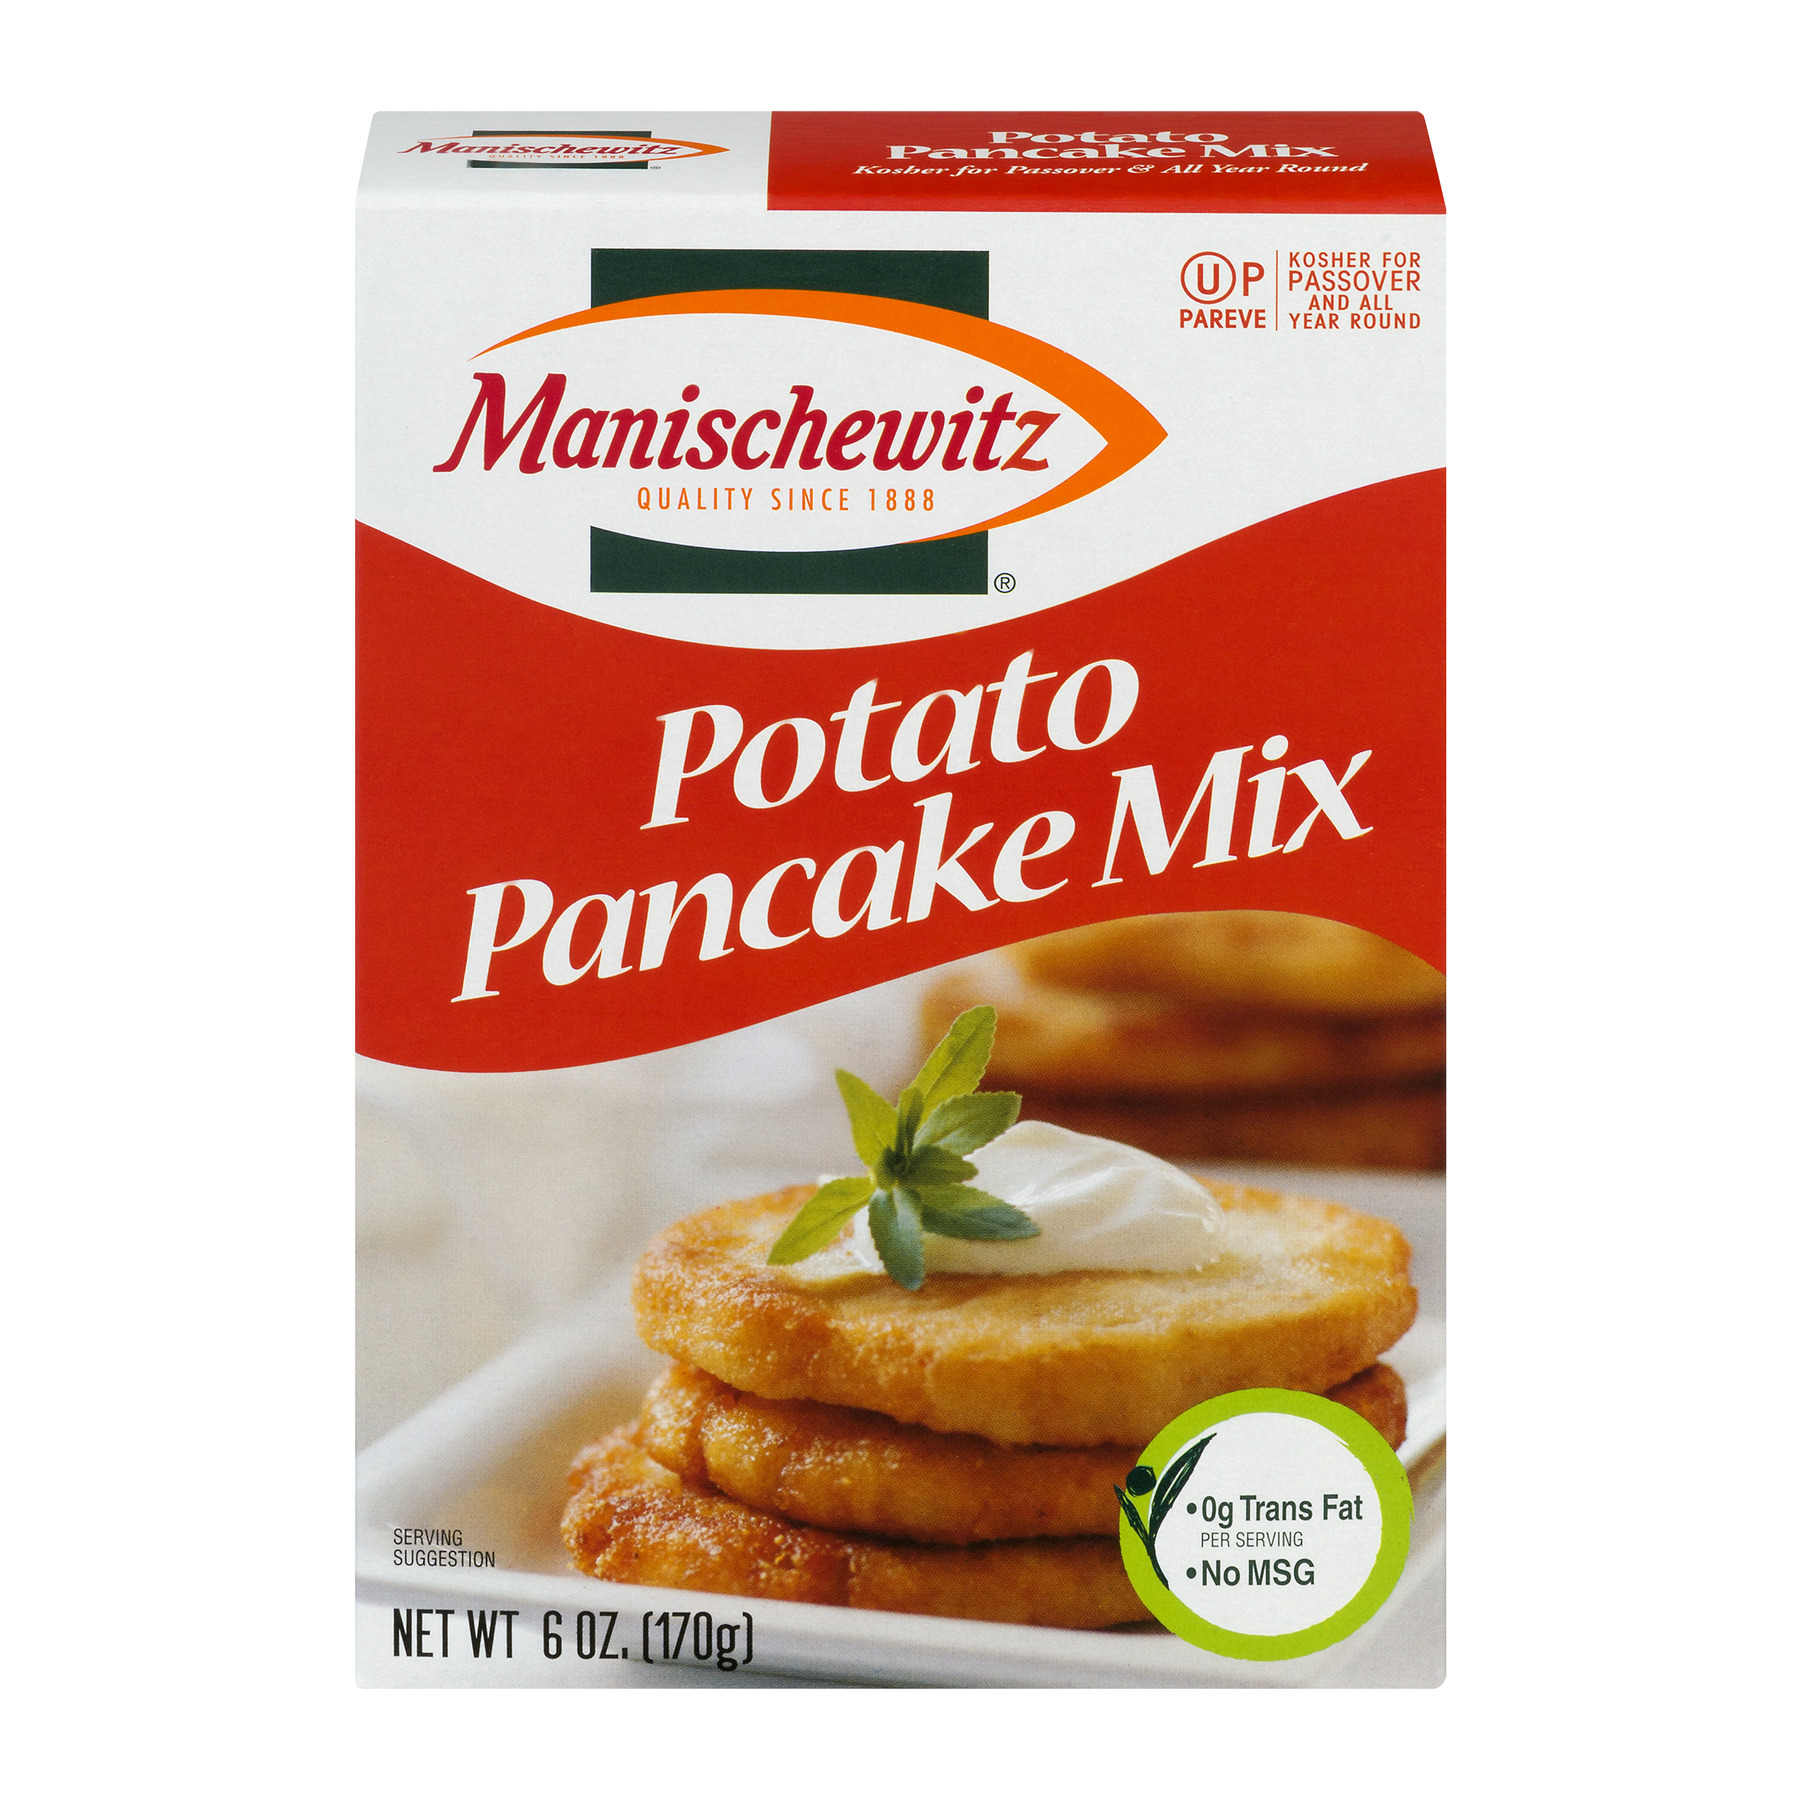 Manischewitz Potato Pancake Mix, 6 oz